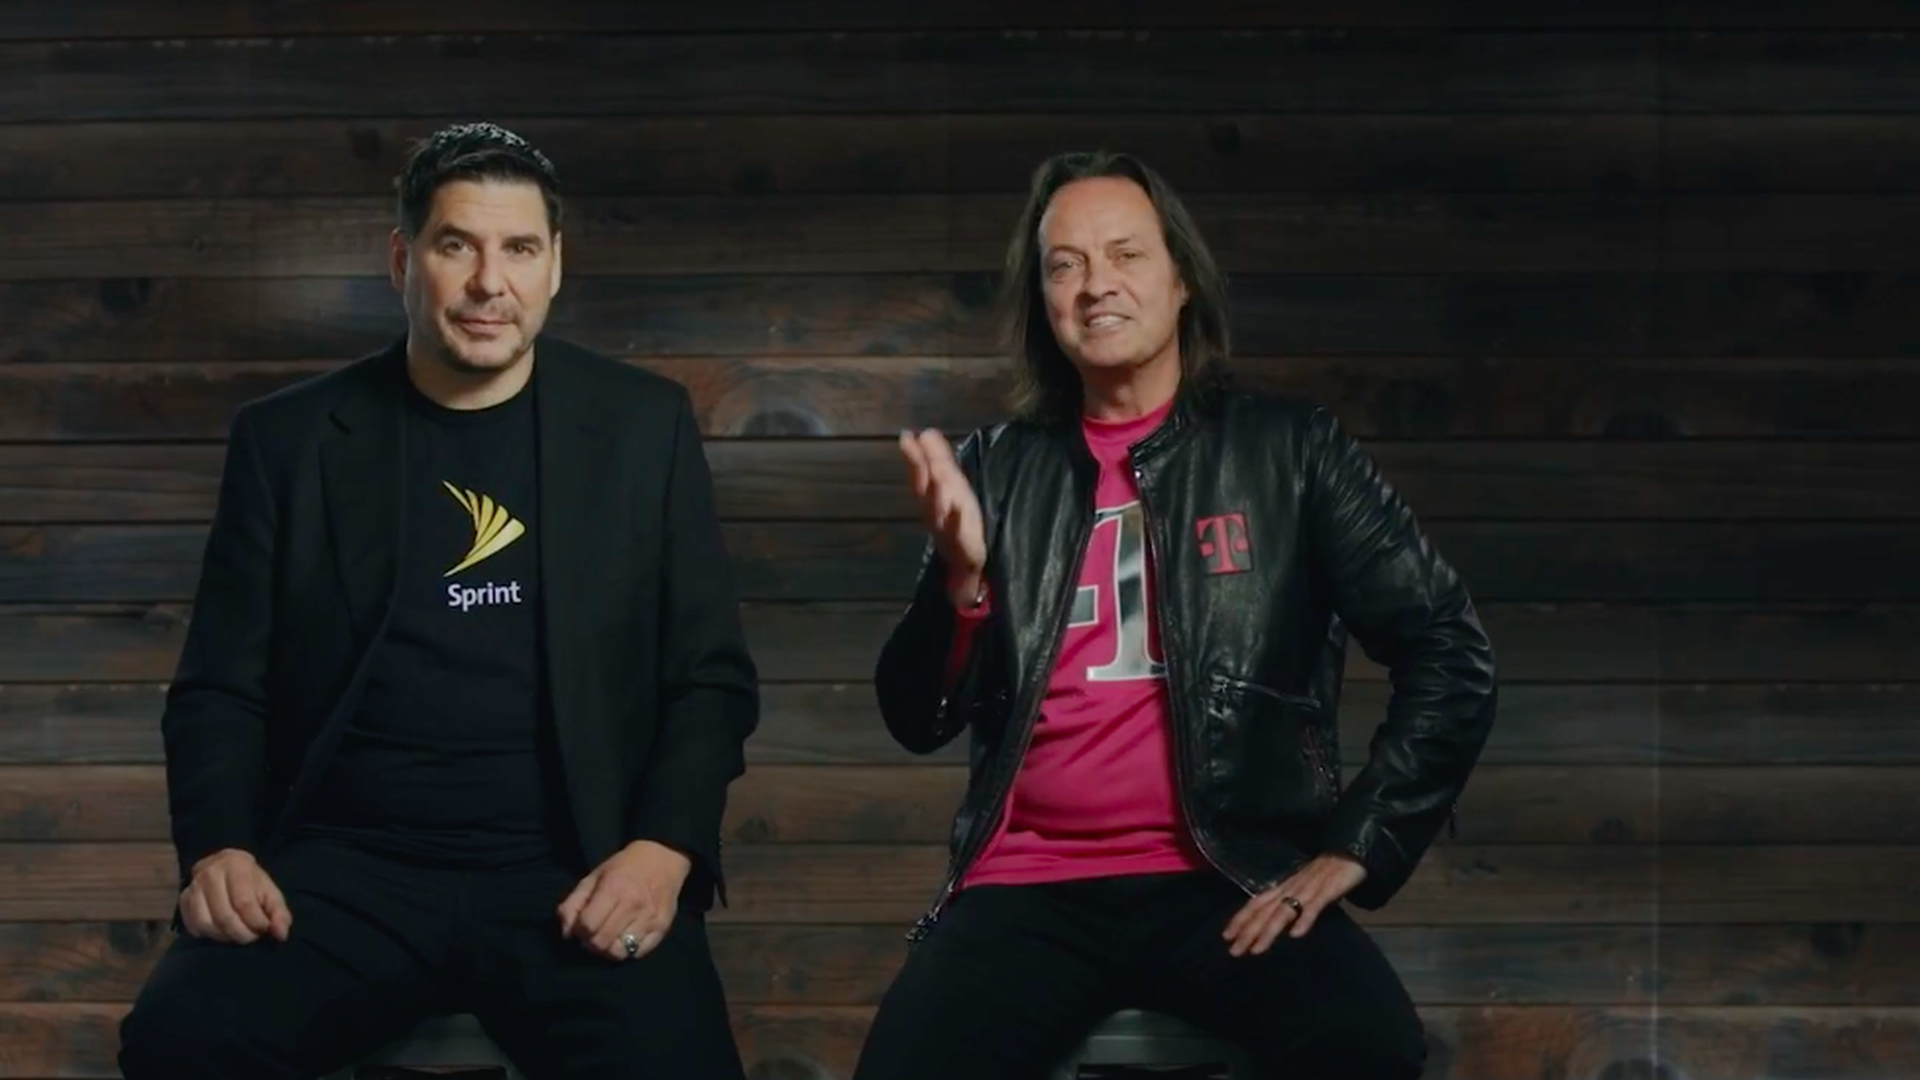 Sprint CEO Marcelo Claure and T-Mobile CEO John Legere